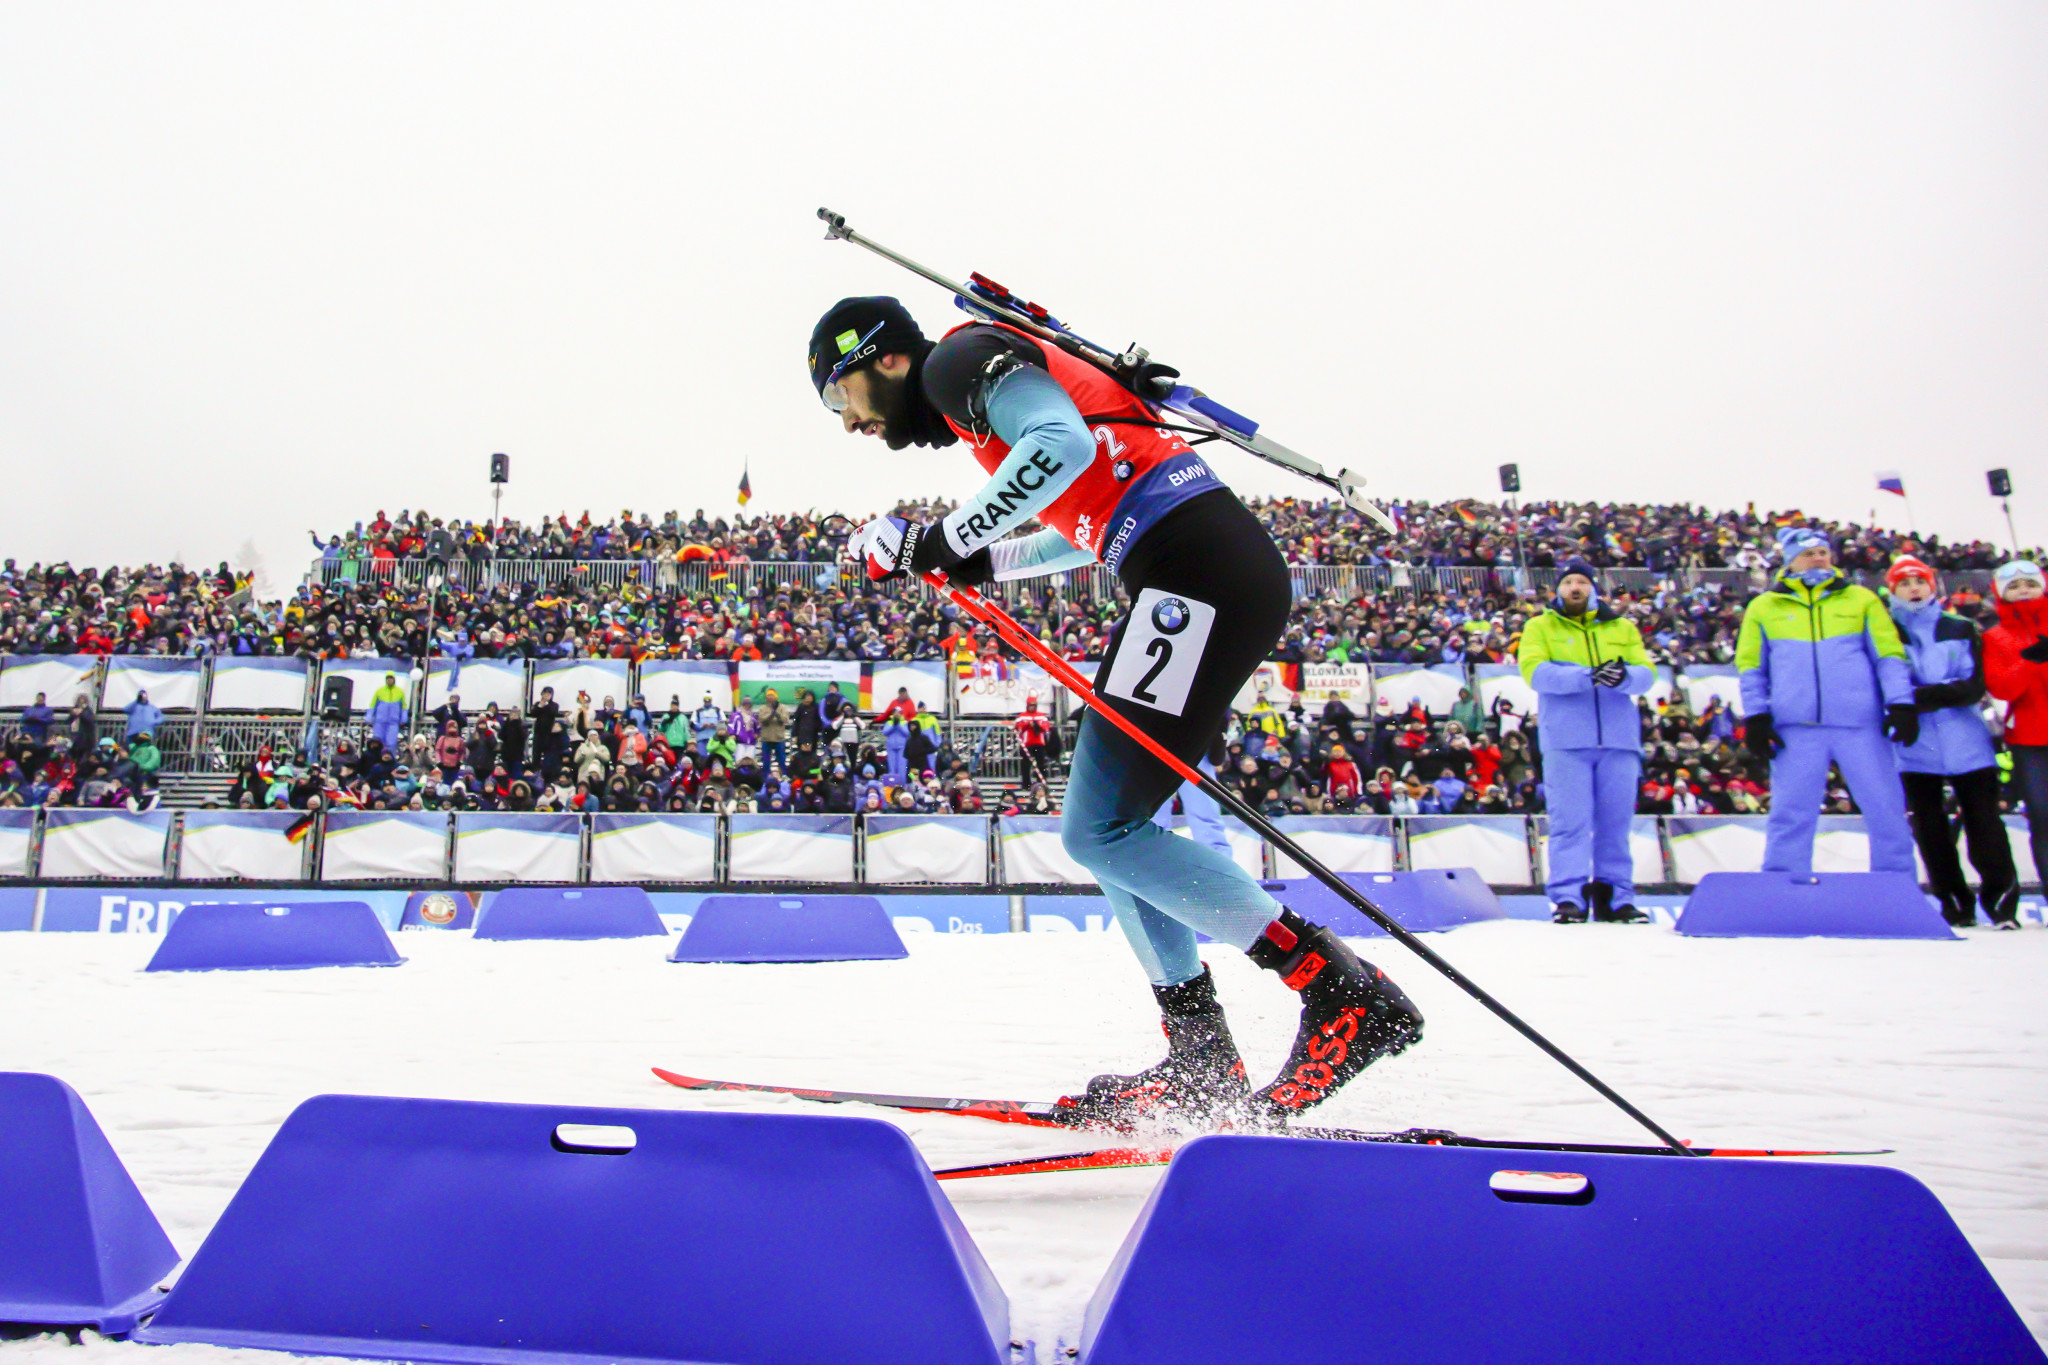 Fourcade looks to extend IBU World Cup advantage with Bø still on paternity leave